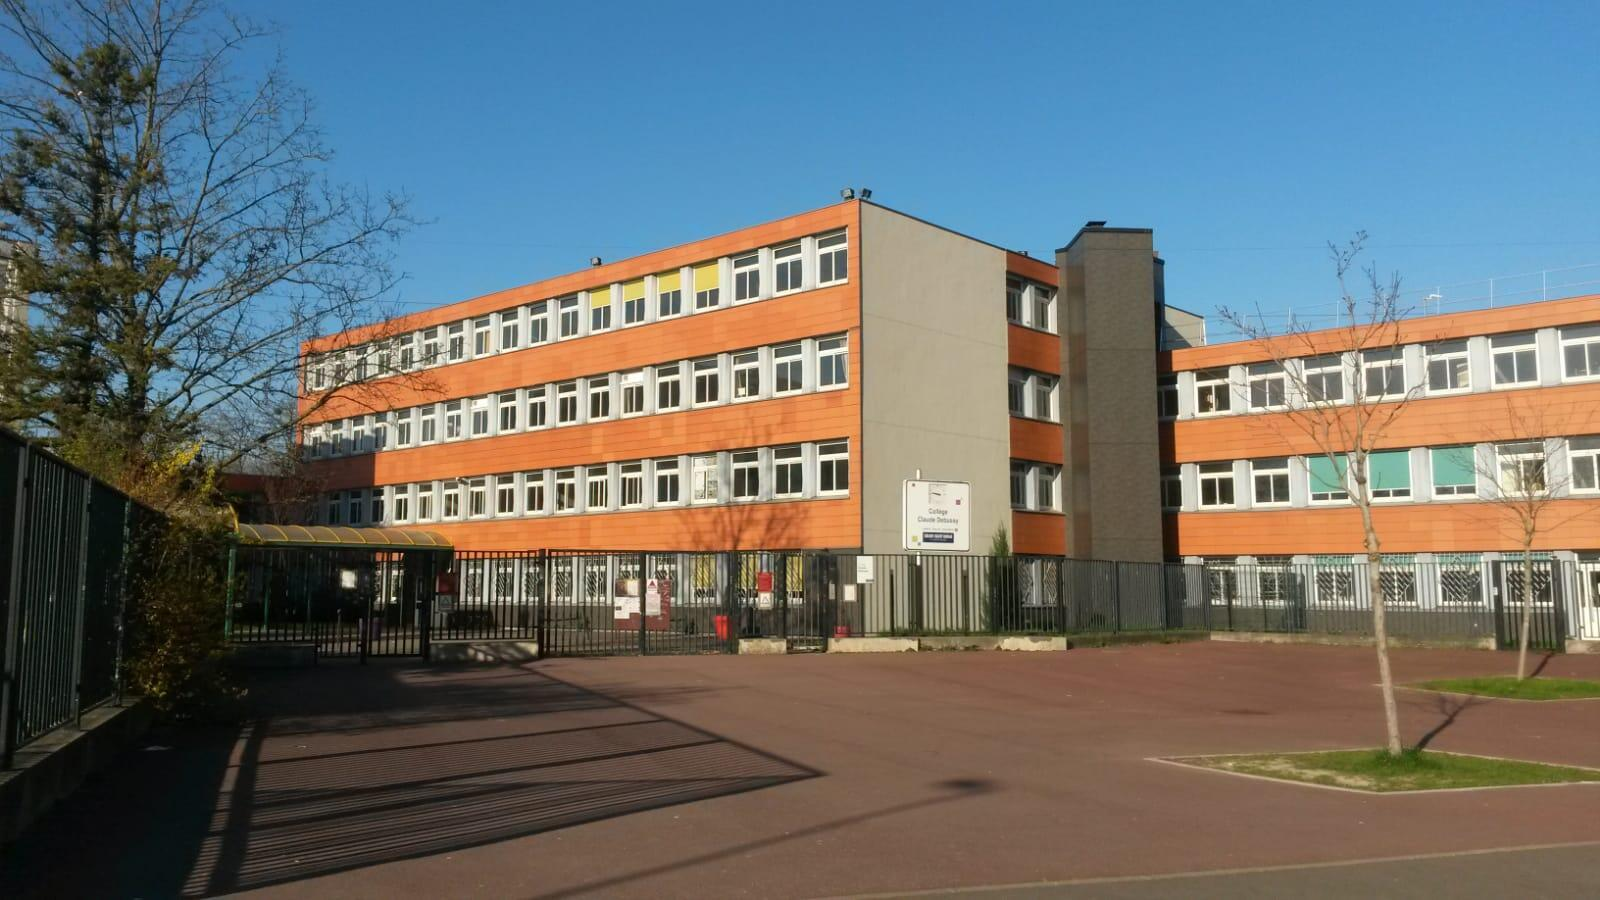 The Collège Claude Debussy, a college in Aulnay-sous-Bois, one of the many establishments to have reported an alarming spike in infections.